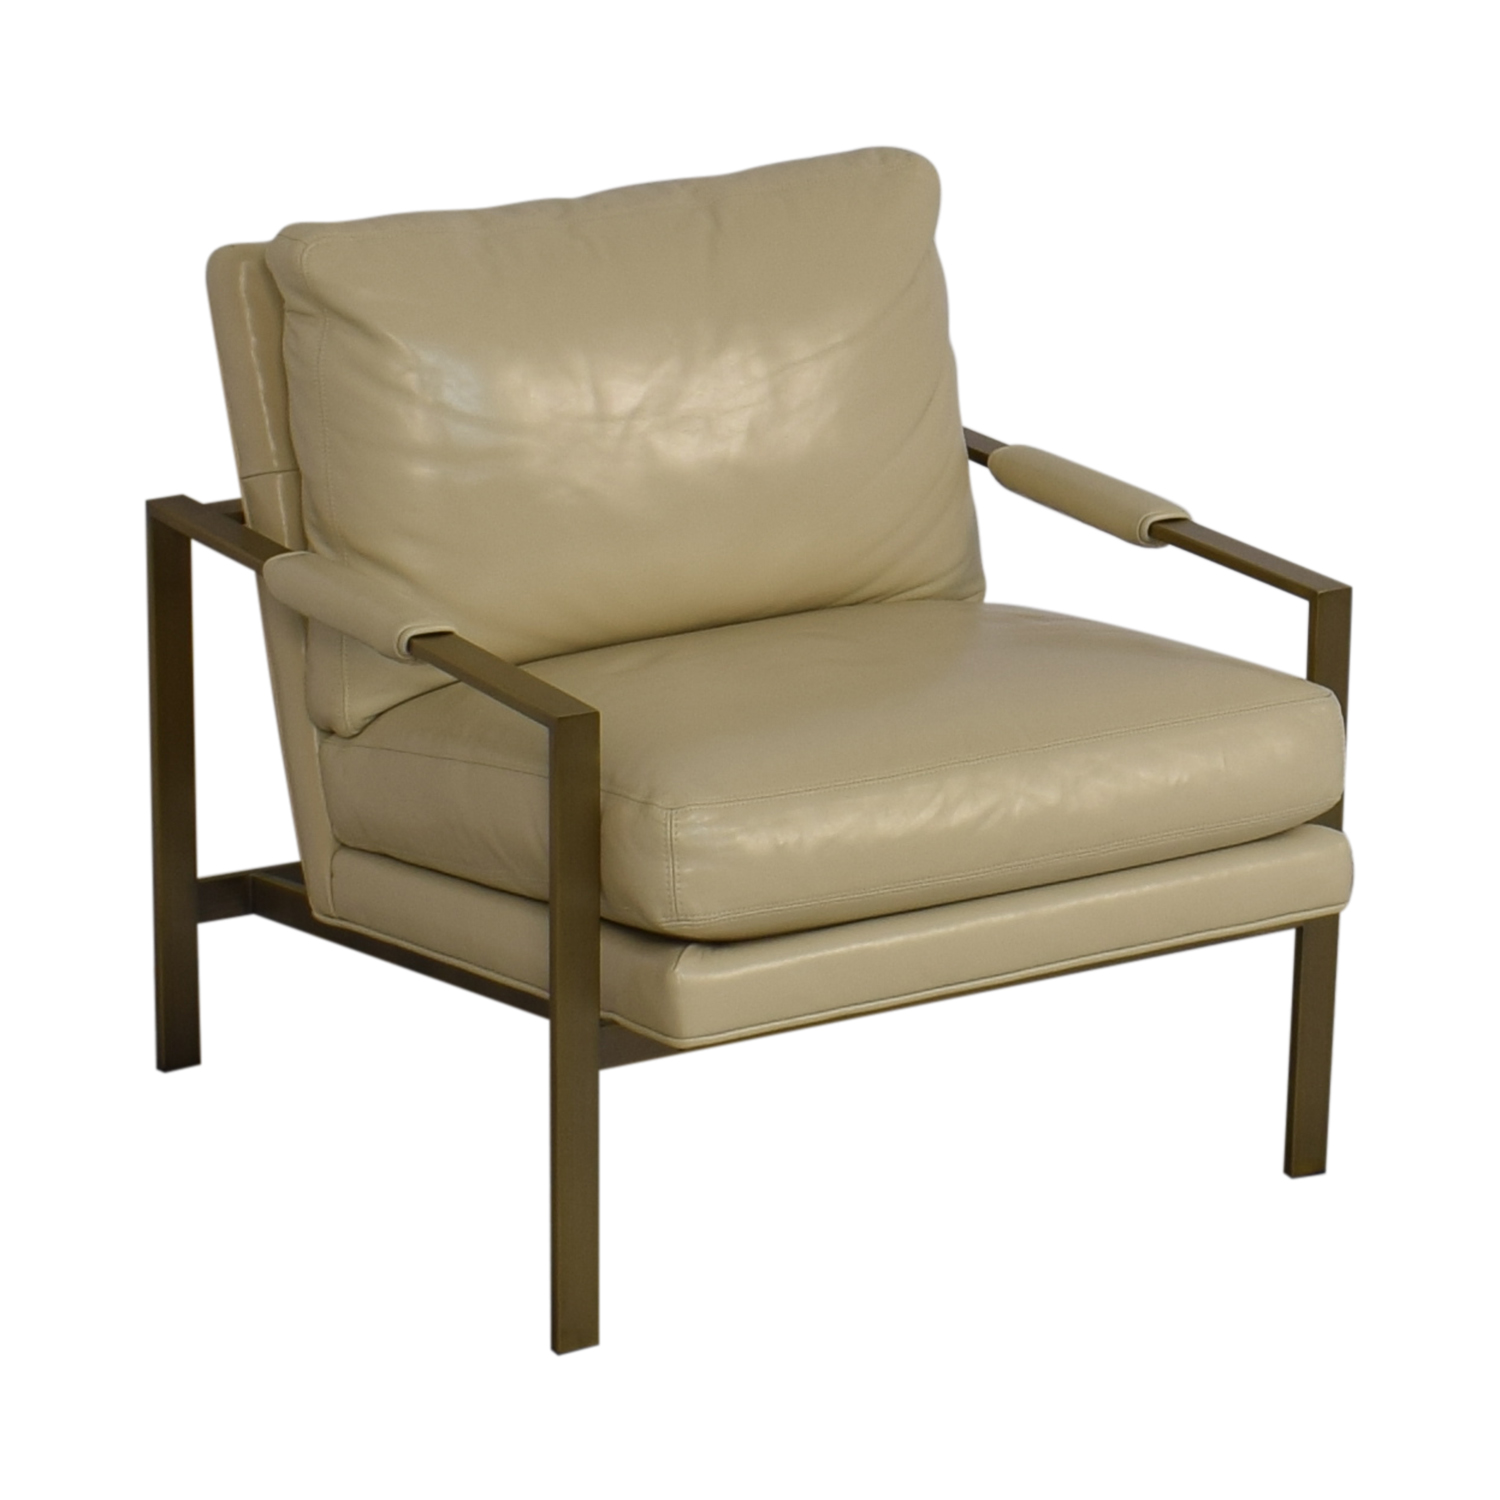 Crate & Barrel Milo Baughman Leather Chair / Chairs